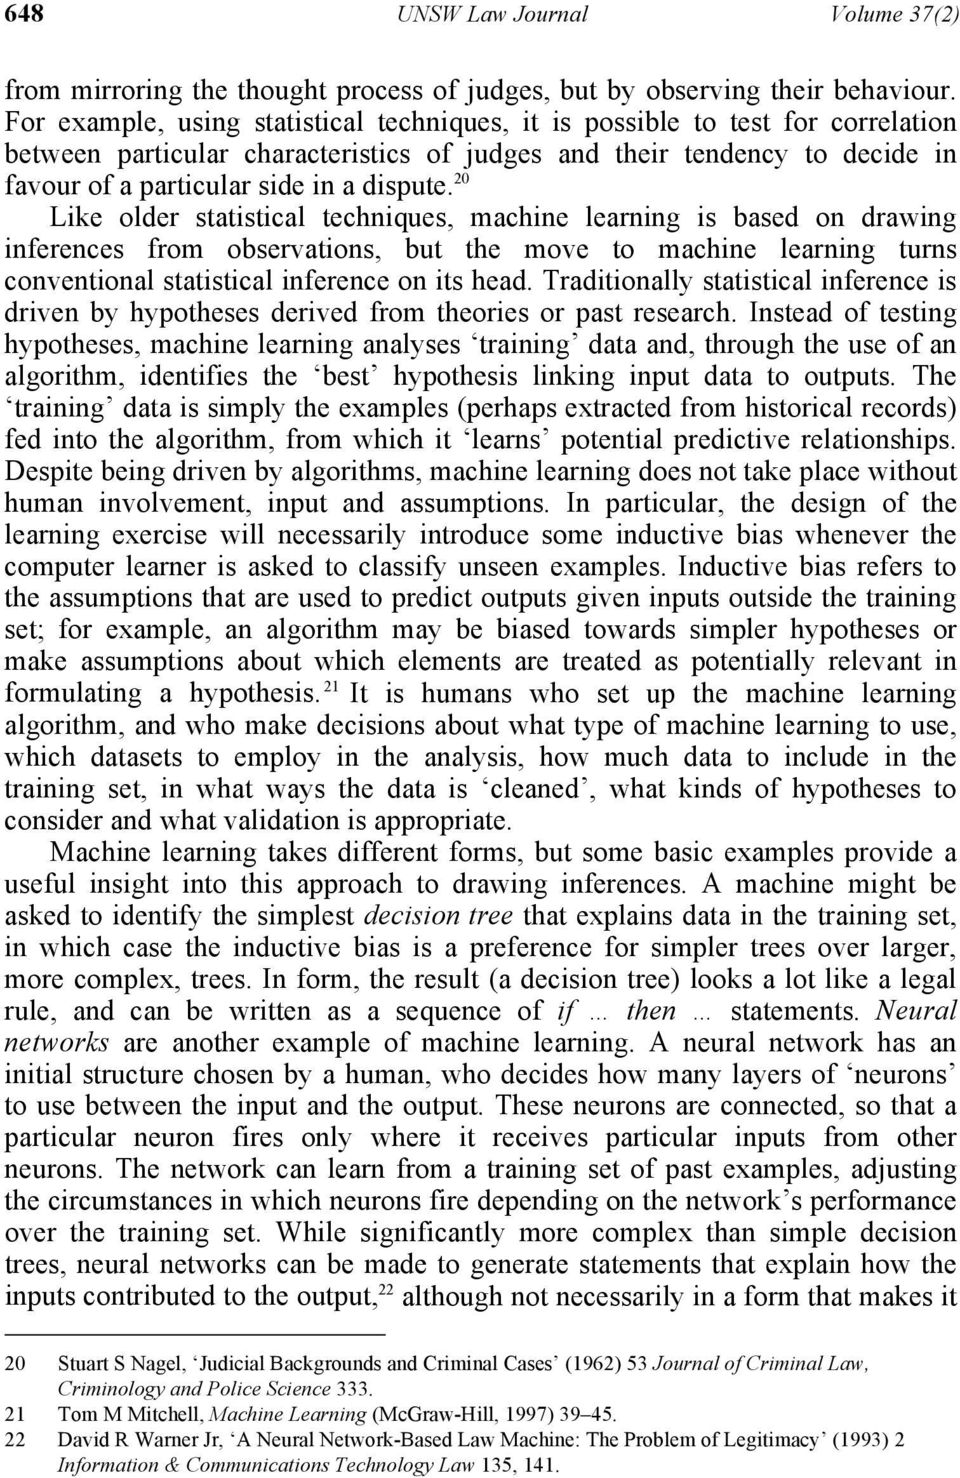 20 Like older statistical techniques, machine learning is based on drawing inferences from observations, but the move to machine learning turns conventional statistical inference on its head.